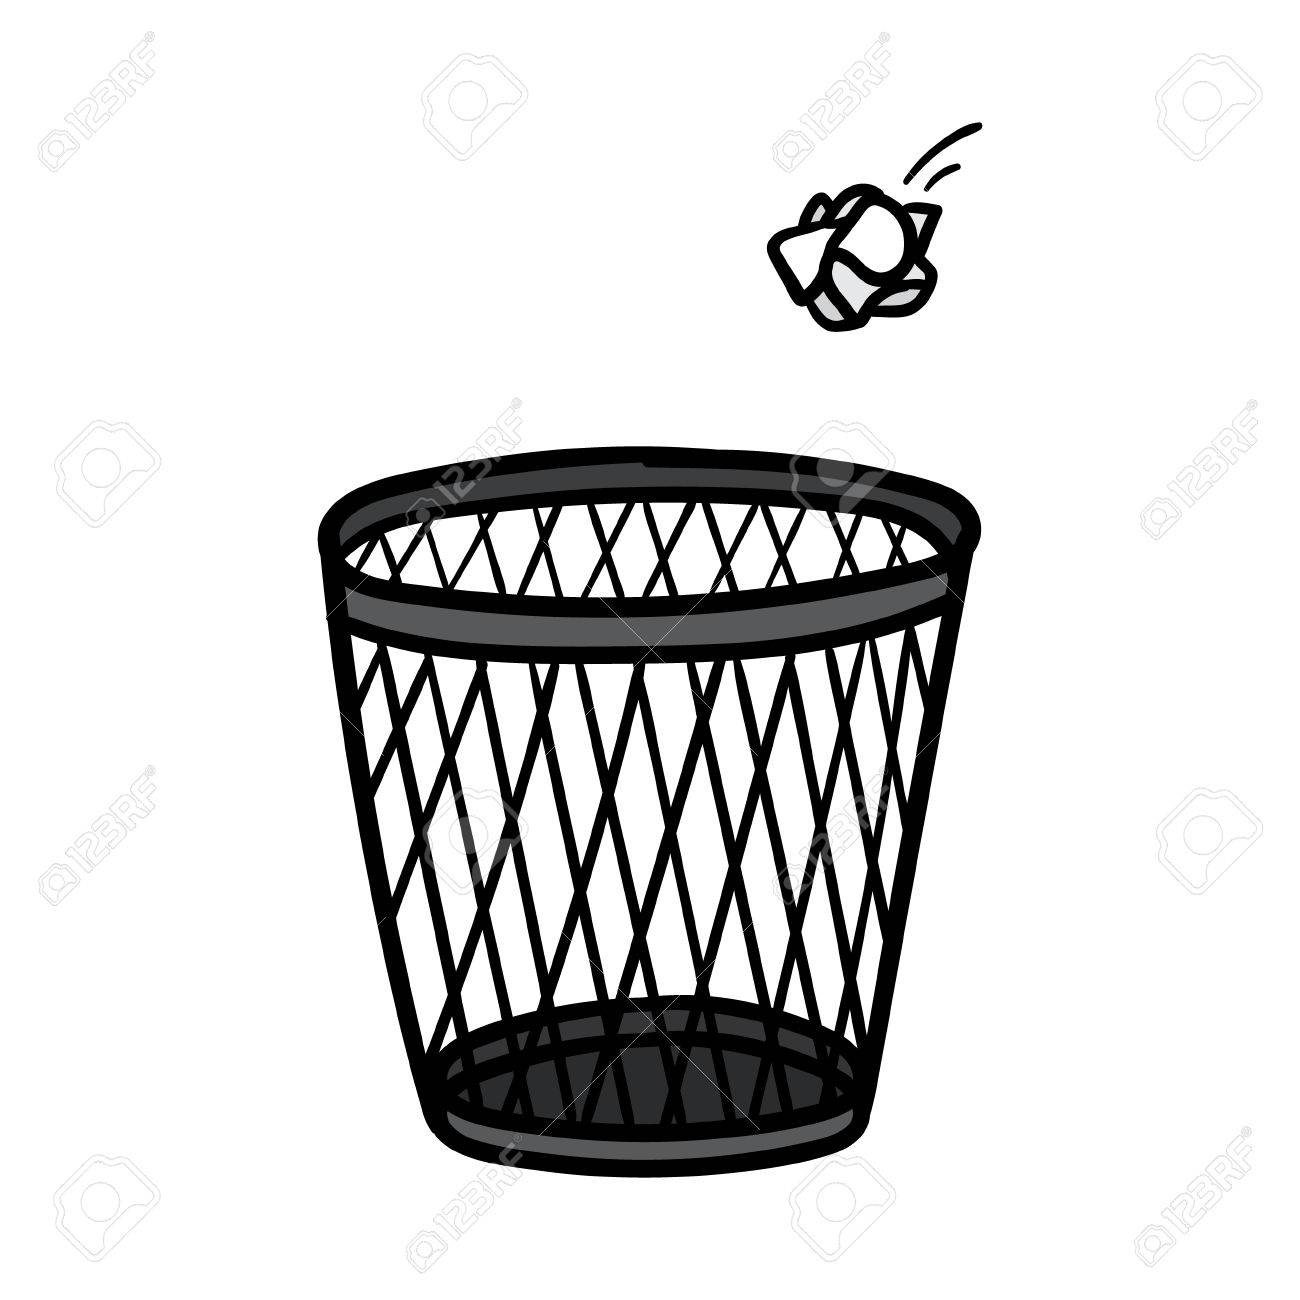 cartoon crumpled paper and trash can vector illustration royalty